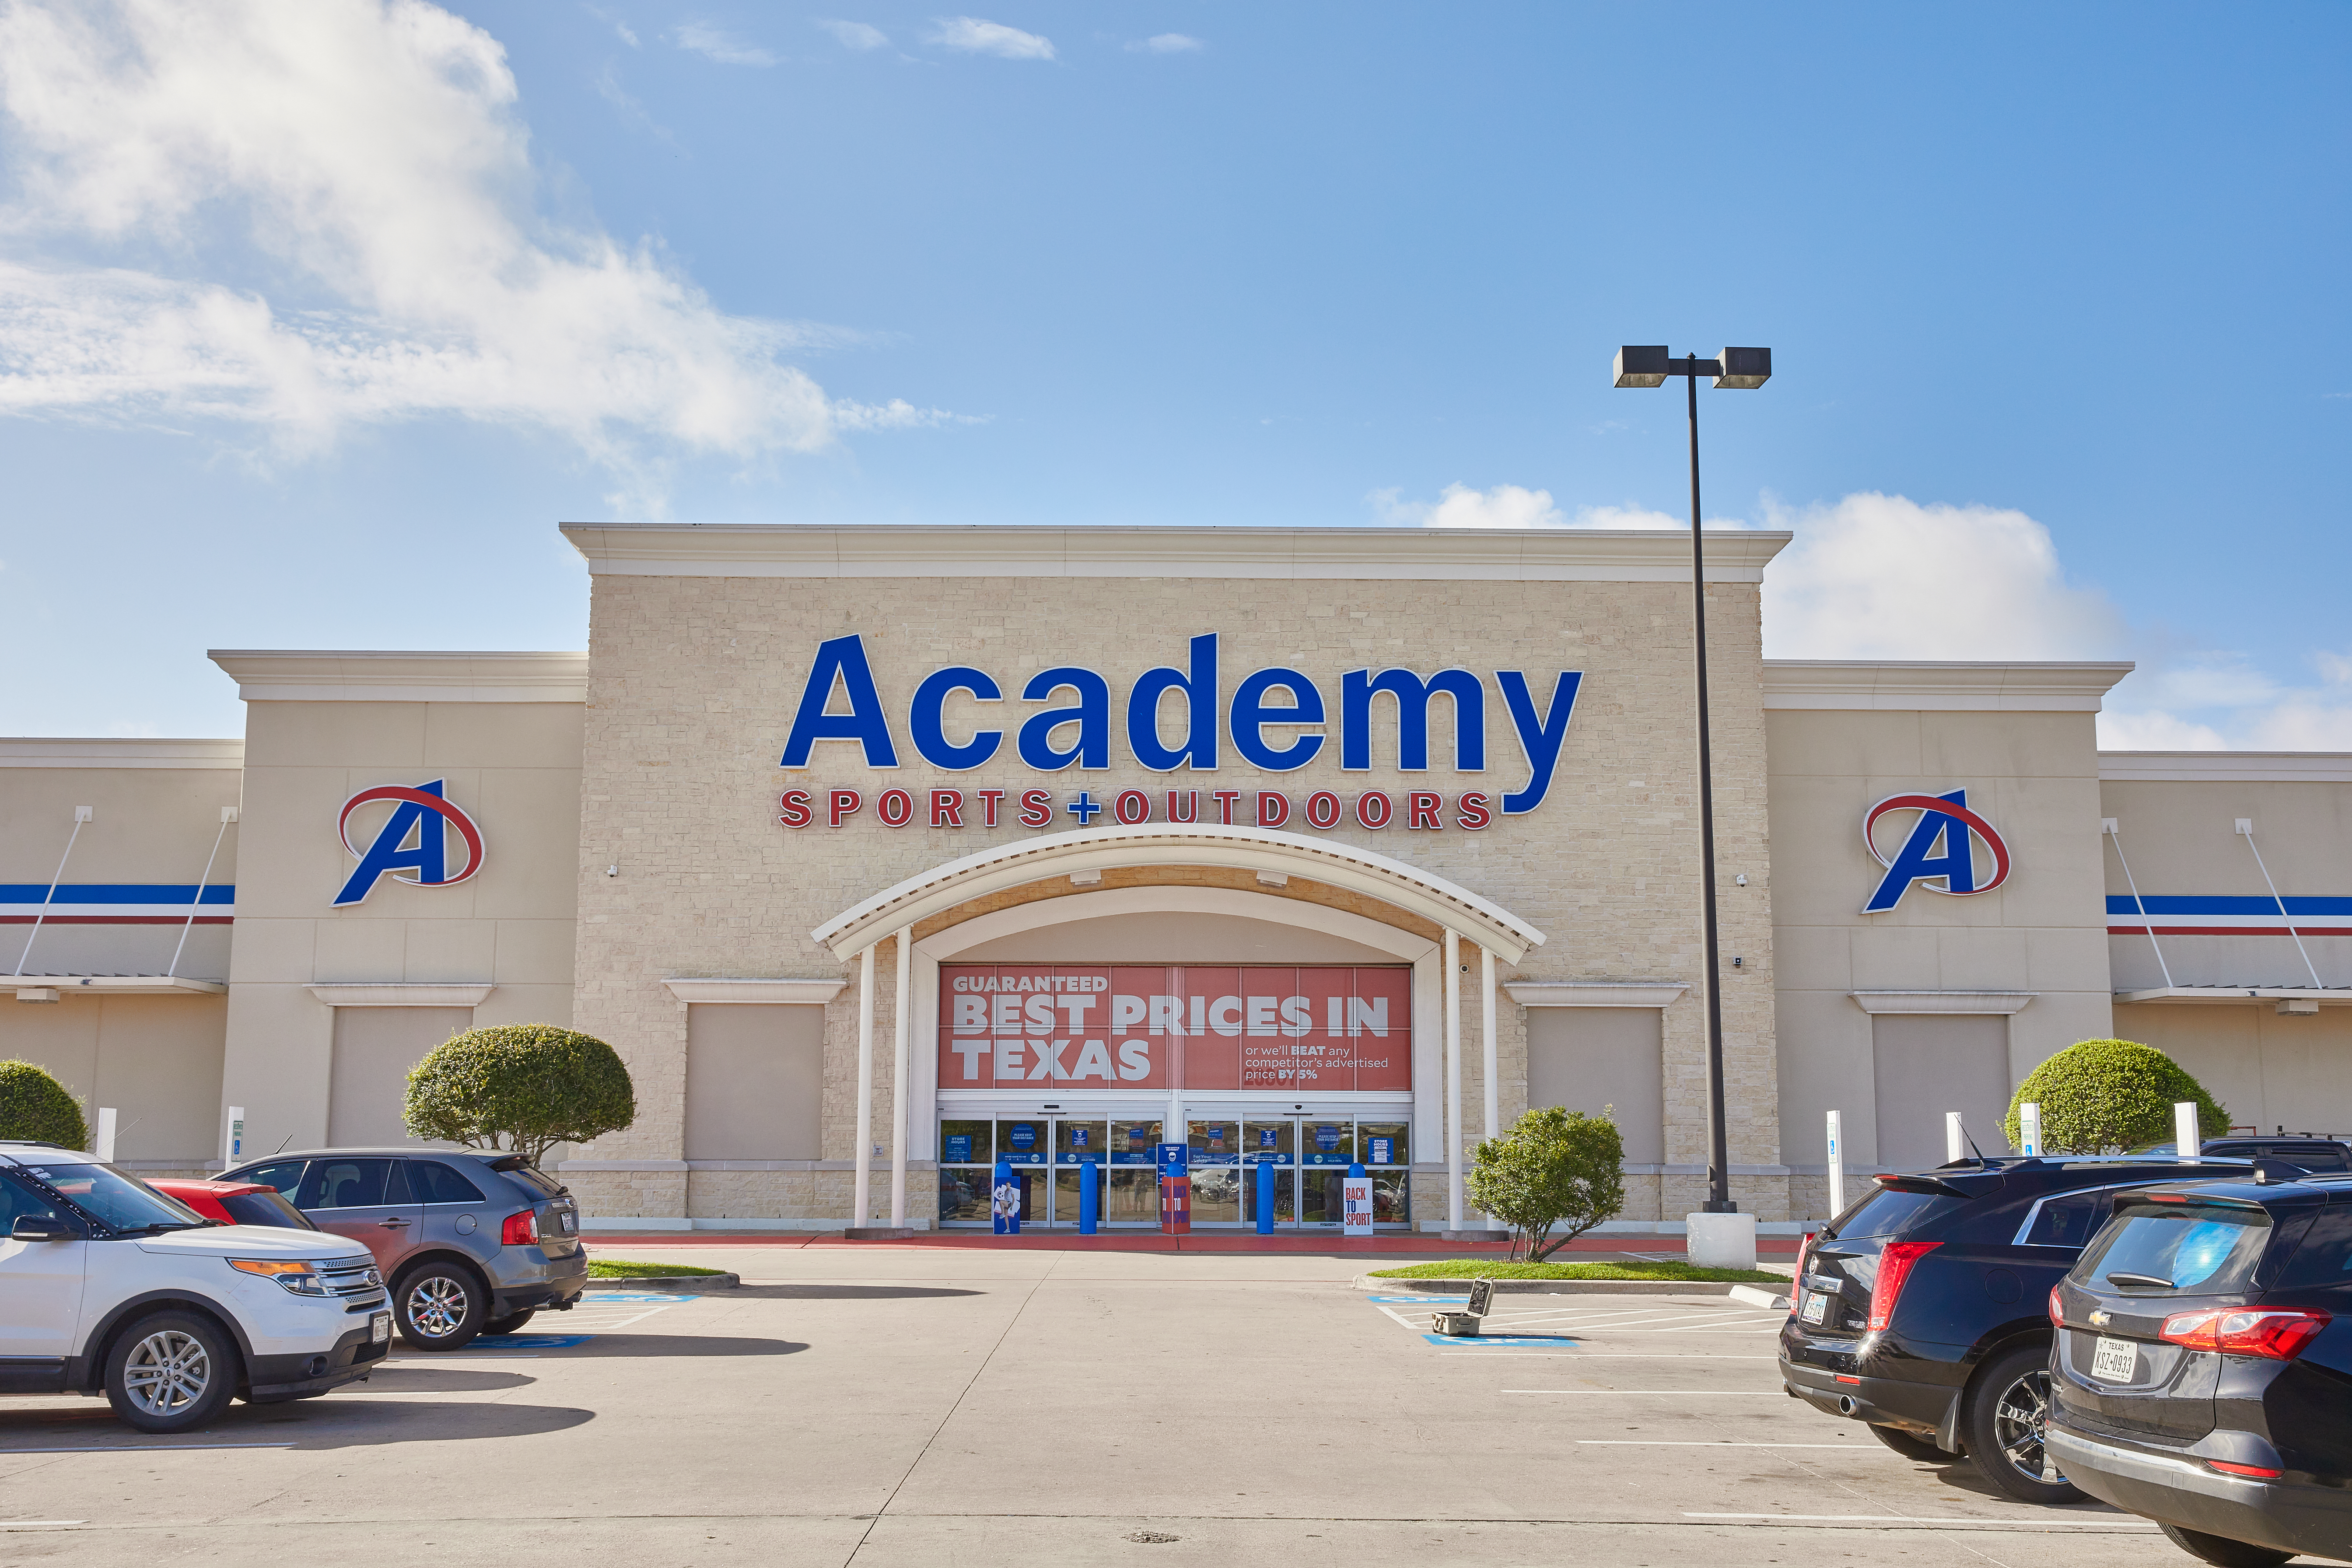 Katy, Texas-based Academy Sports and Outdoors on Tuesday reported net income of $177.8 million for the quarter ended May 1.